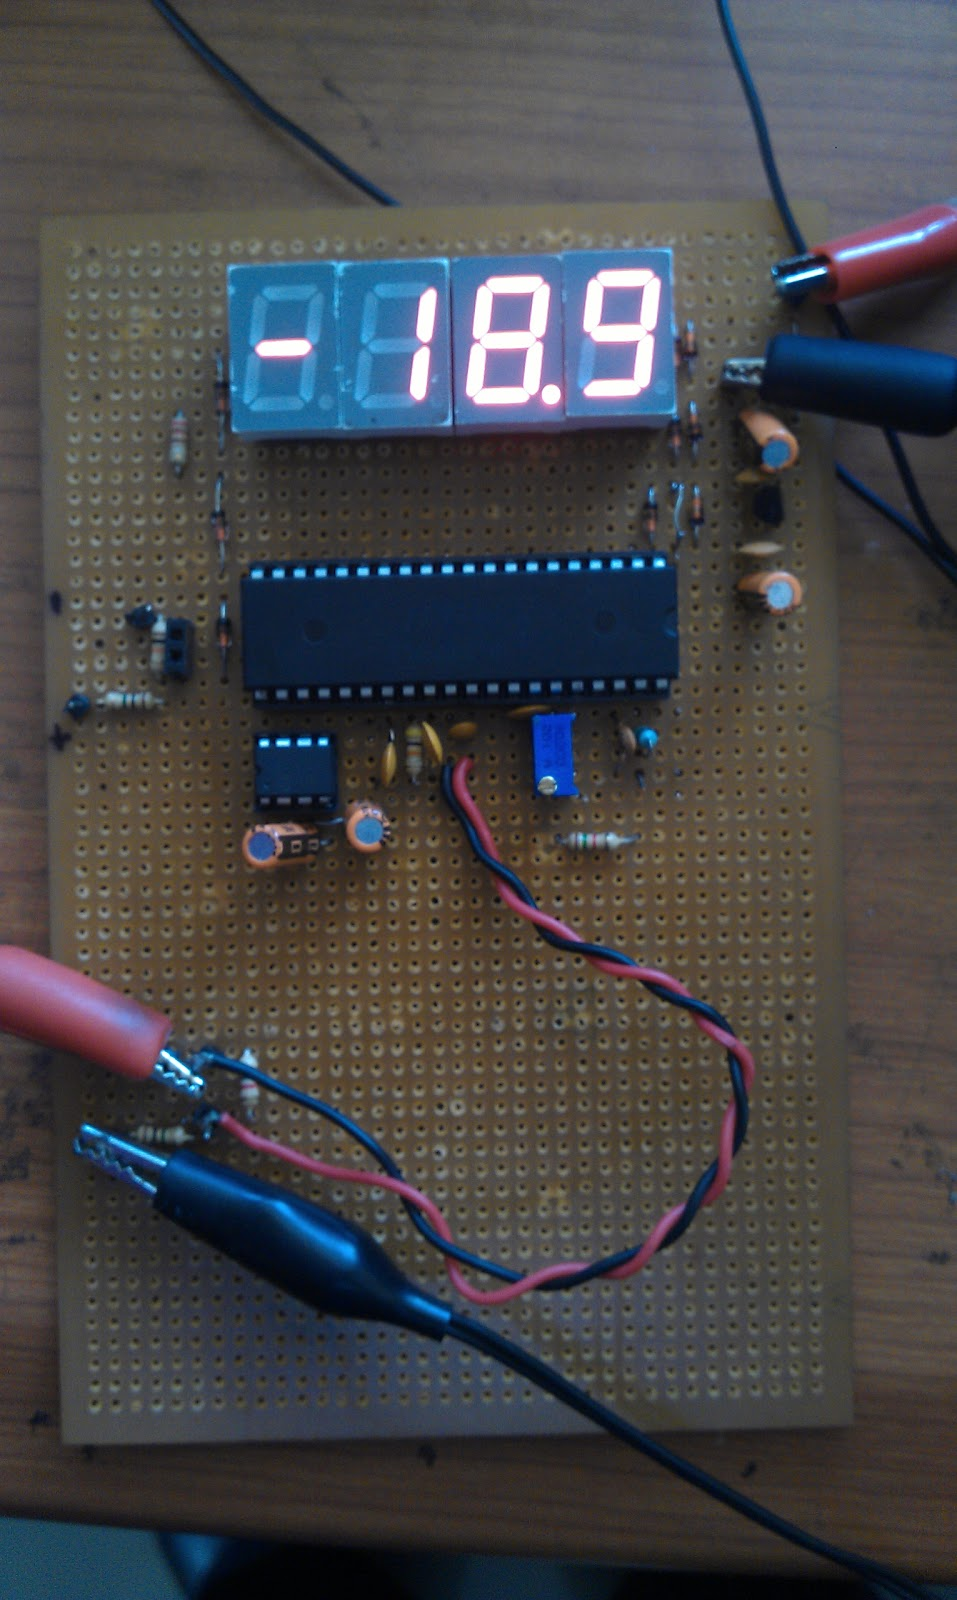 Icl7107 Digital Led Voltmeter Electronics Circuit Picture Hd Walls Ham Radio Mipl 2012 Have A Look At Some Working Snapshot Of Using